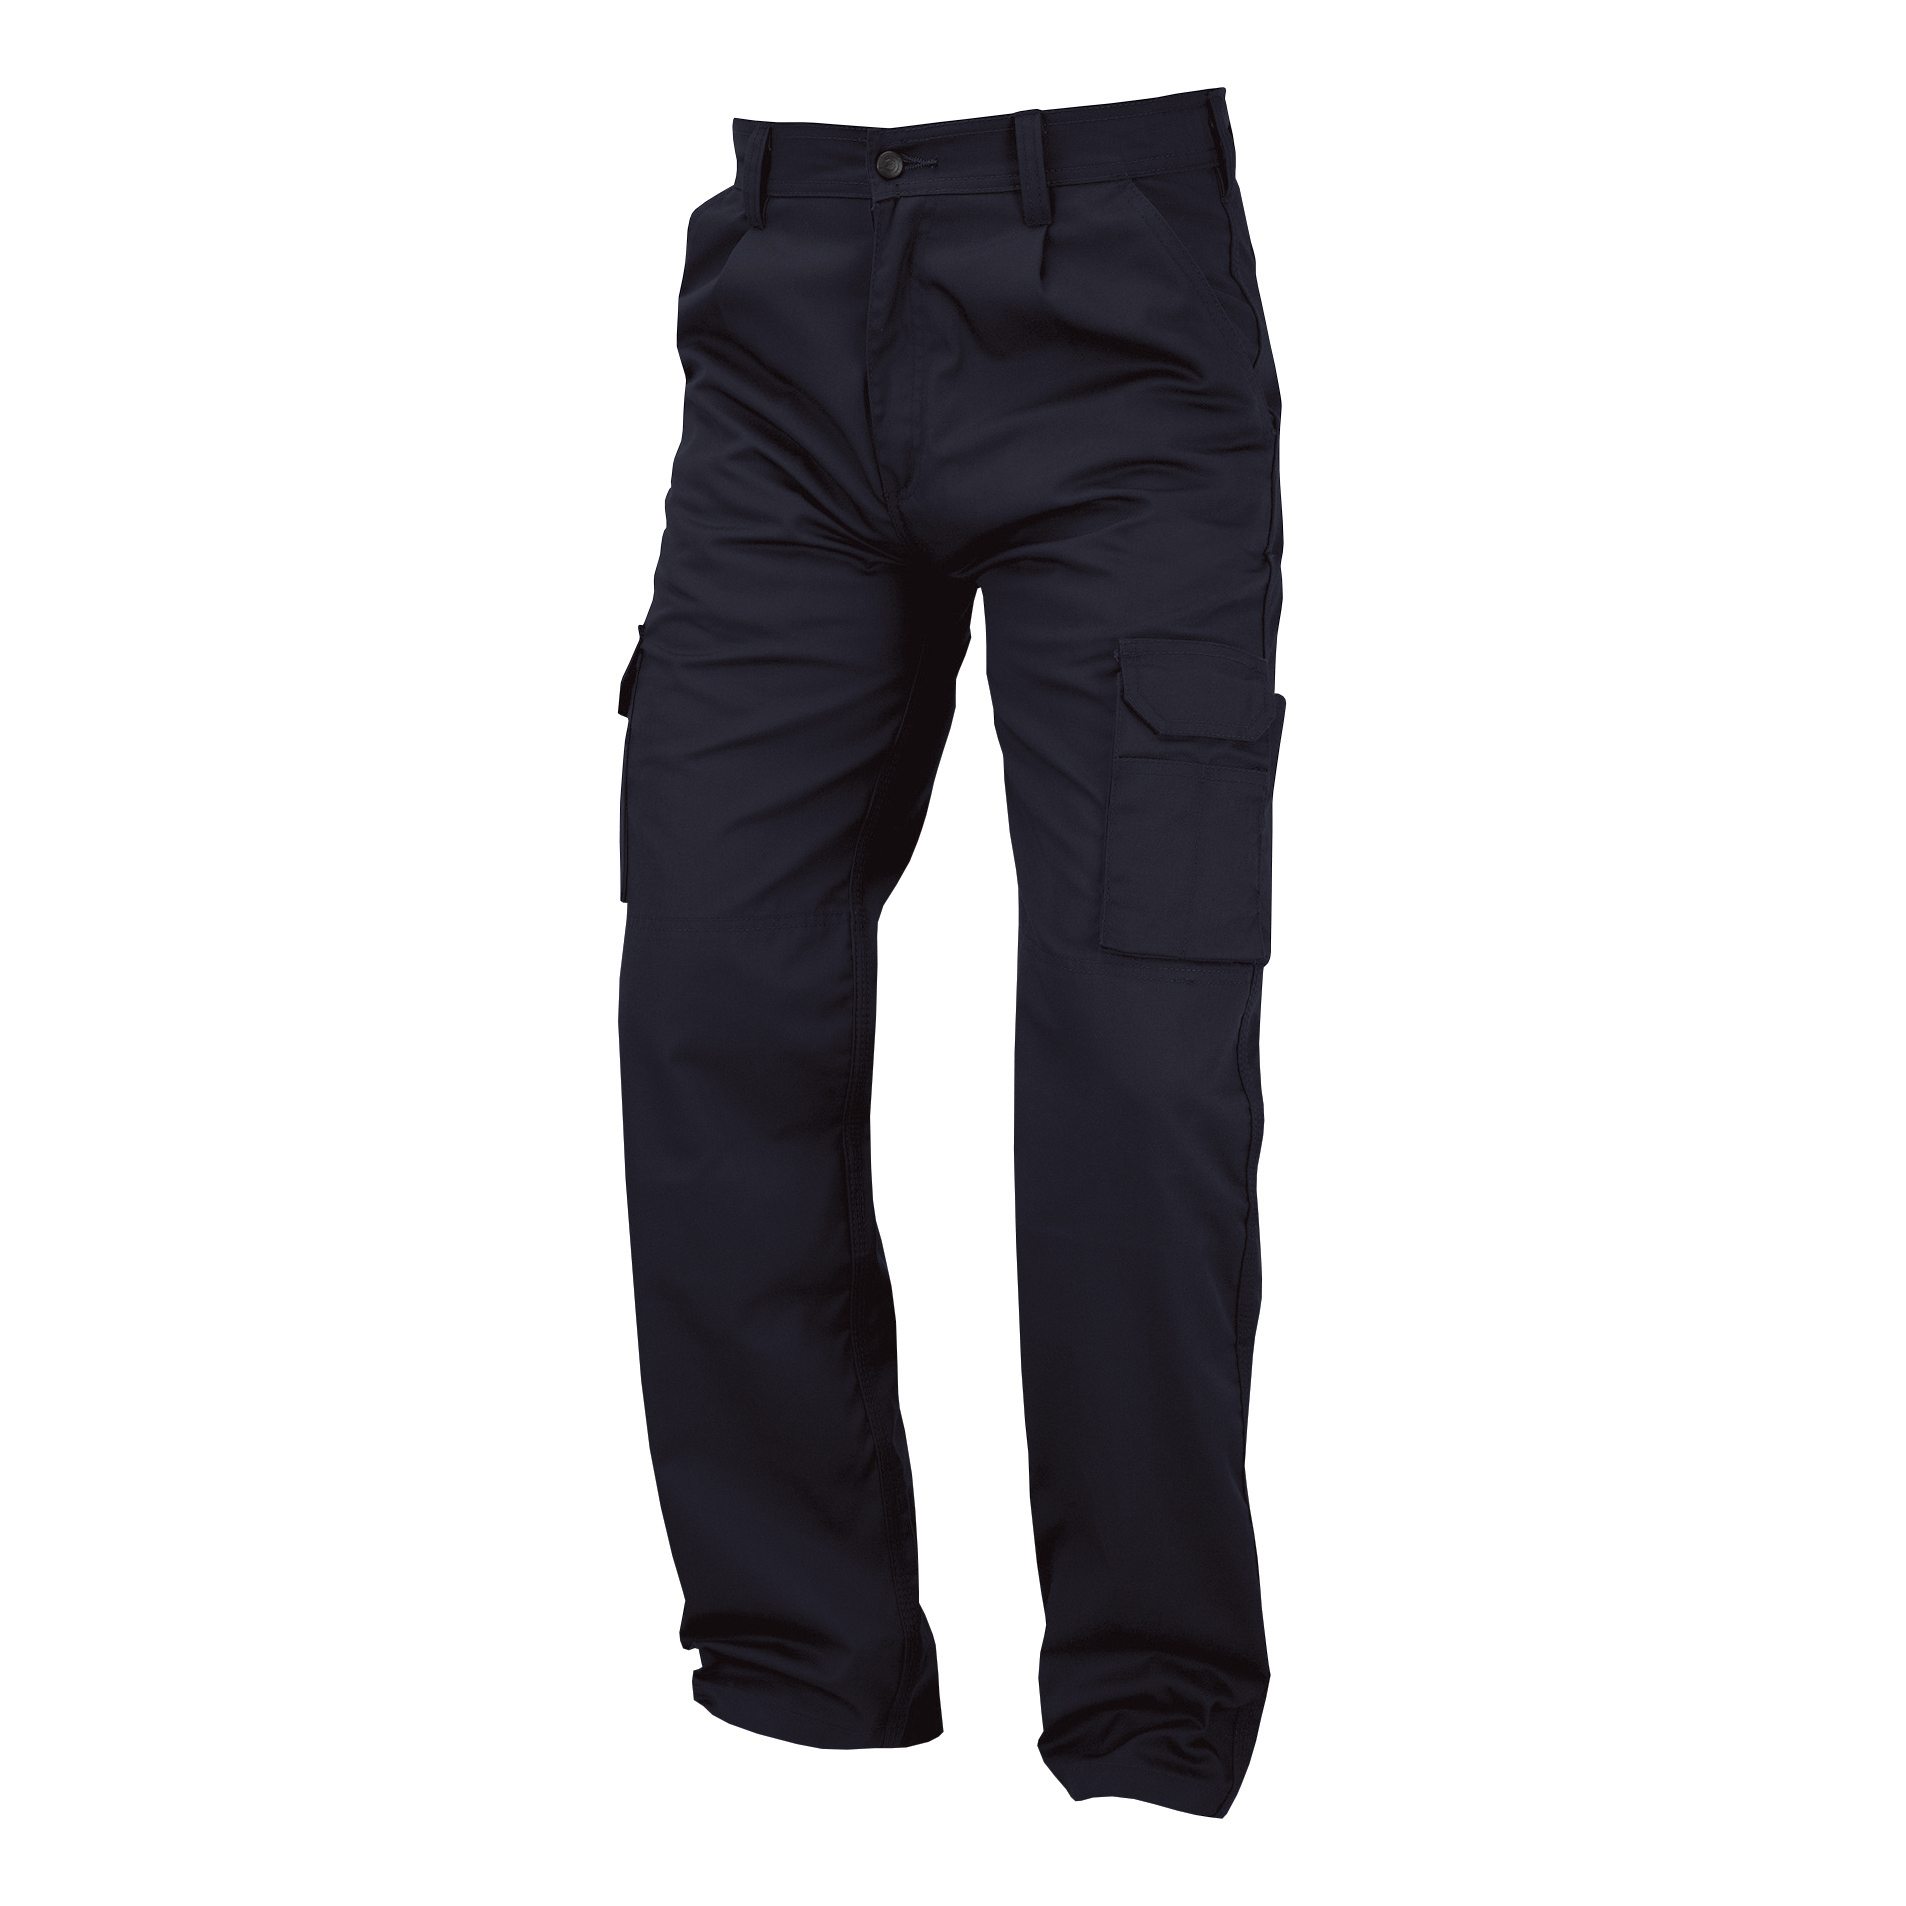 Combat / Cargo Combat Trouser Multi-functional Waist 40in Leg 29in Navy Ref PCTHWN40S *Approx 3 Day Leadtime*